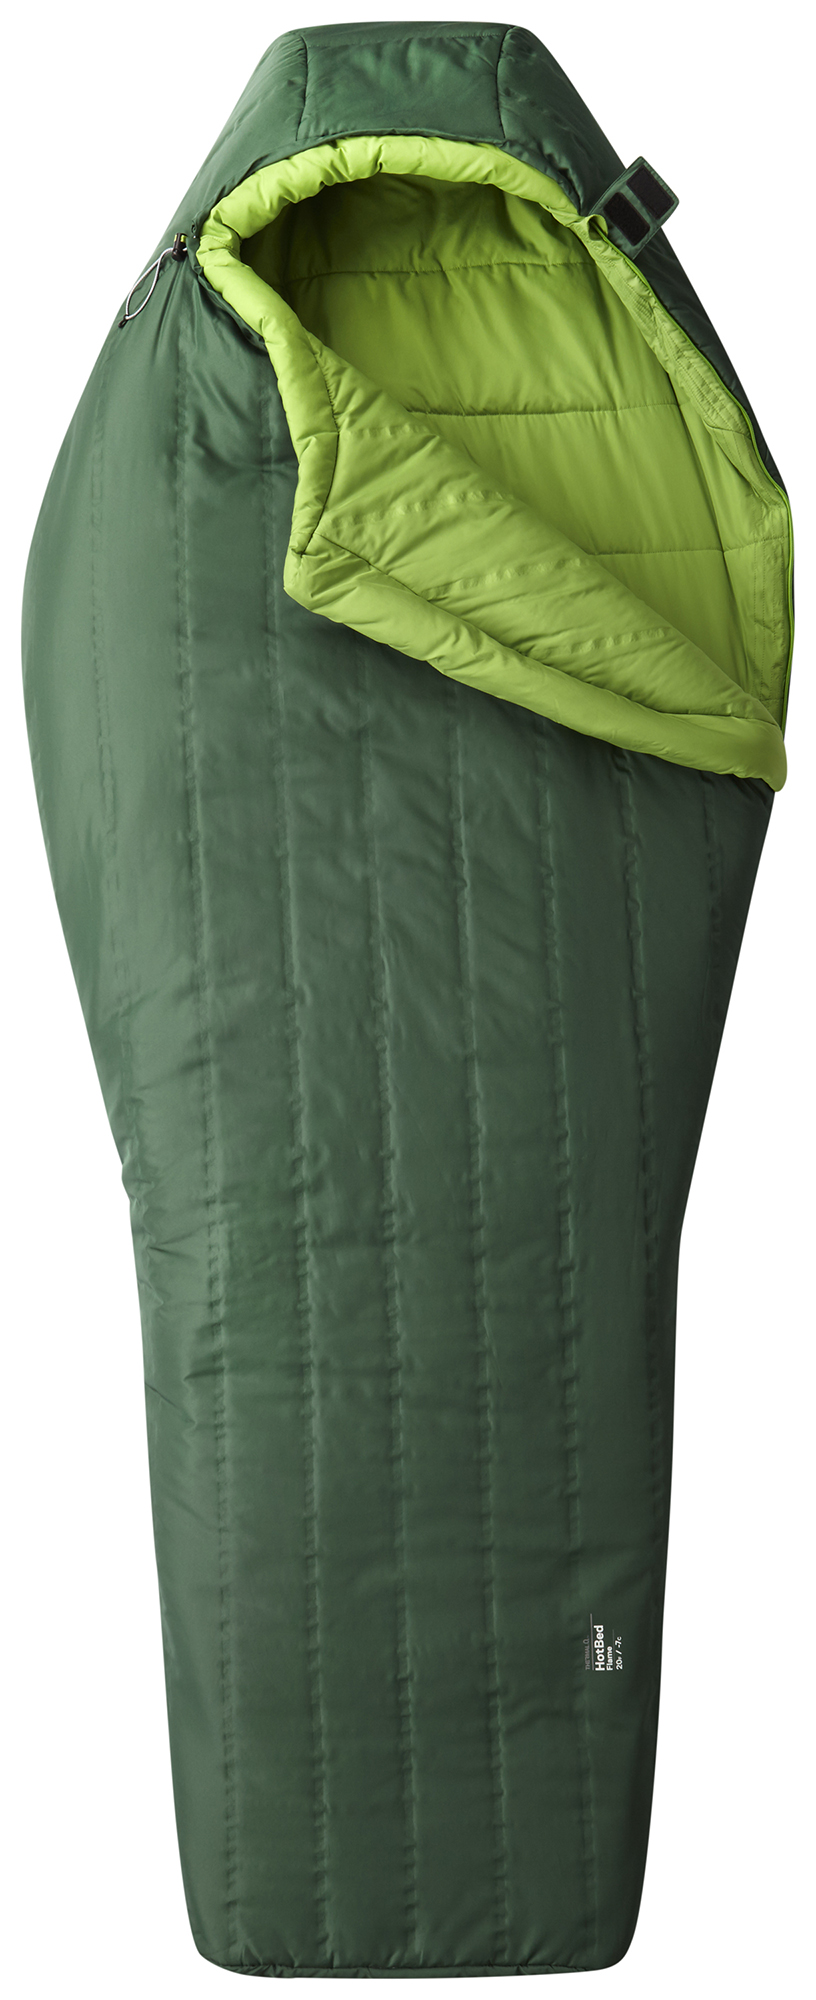 Mountain Hardwear Mountain Hardwear Hotbed Flame, размер 182